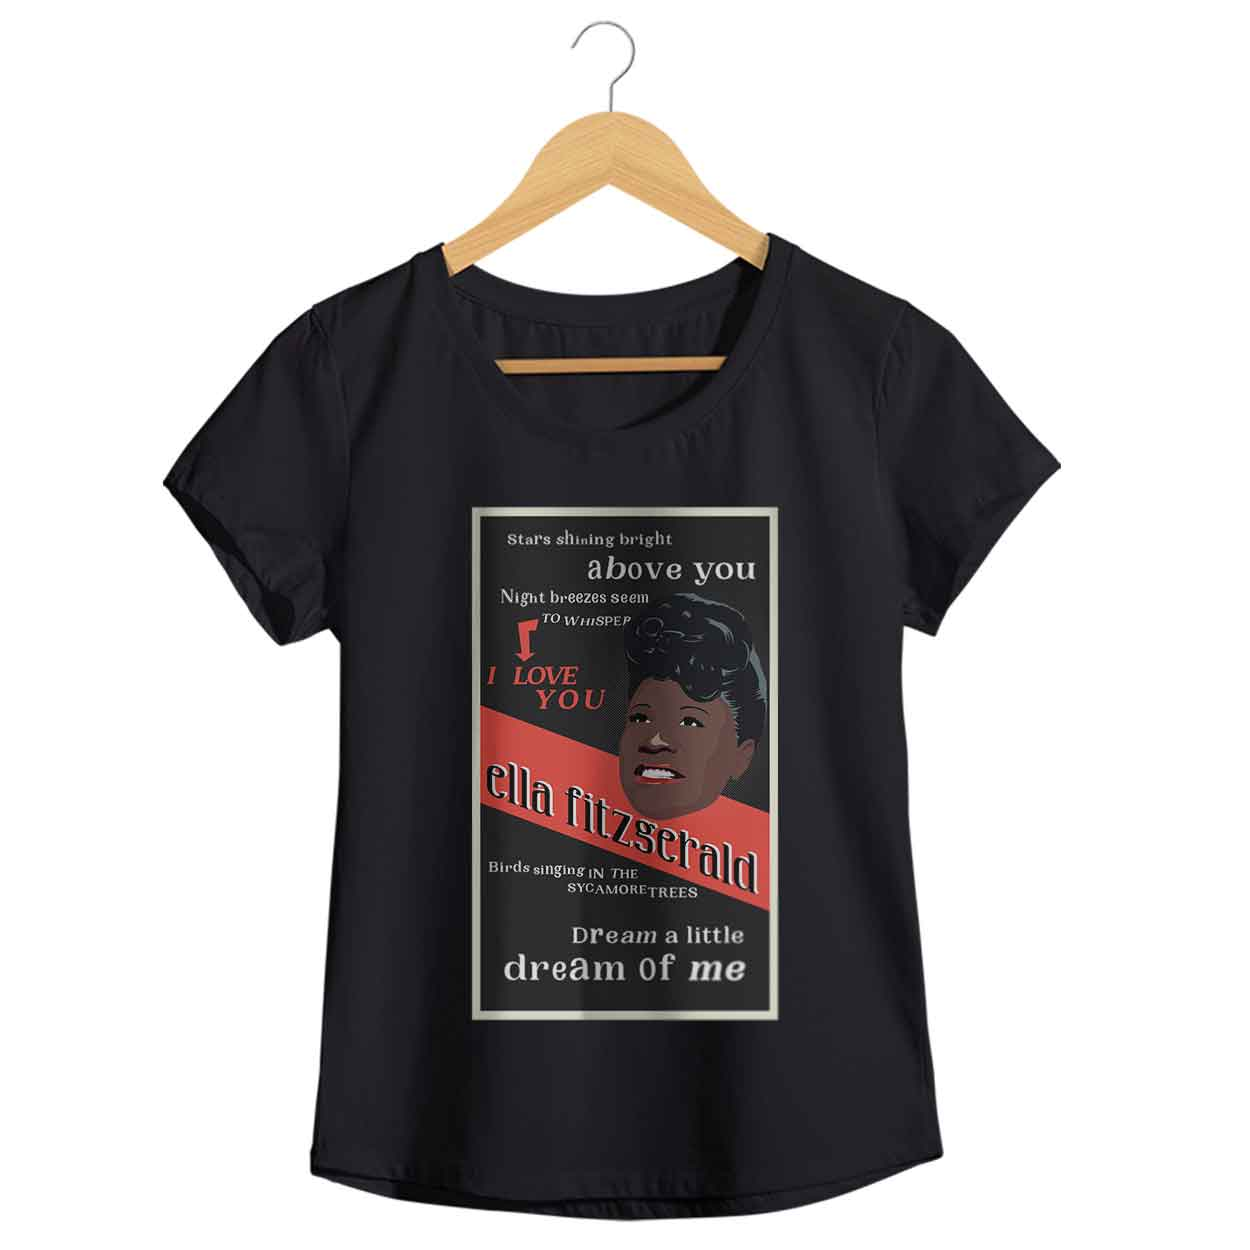 Camiseta - Dream A Little Dream Of Me - Ella Fitzgerald - Feminino